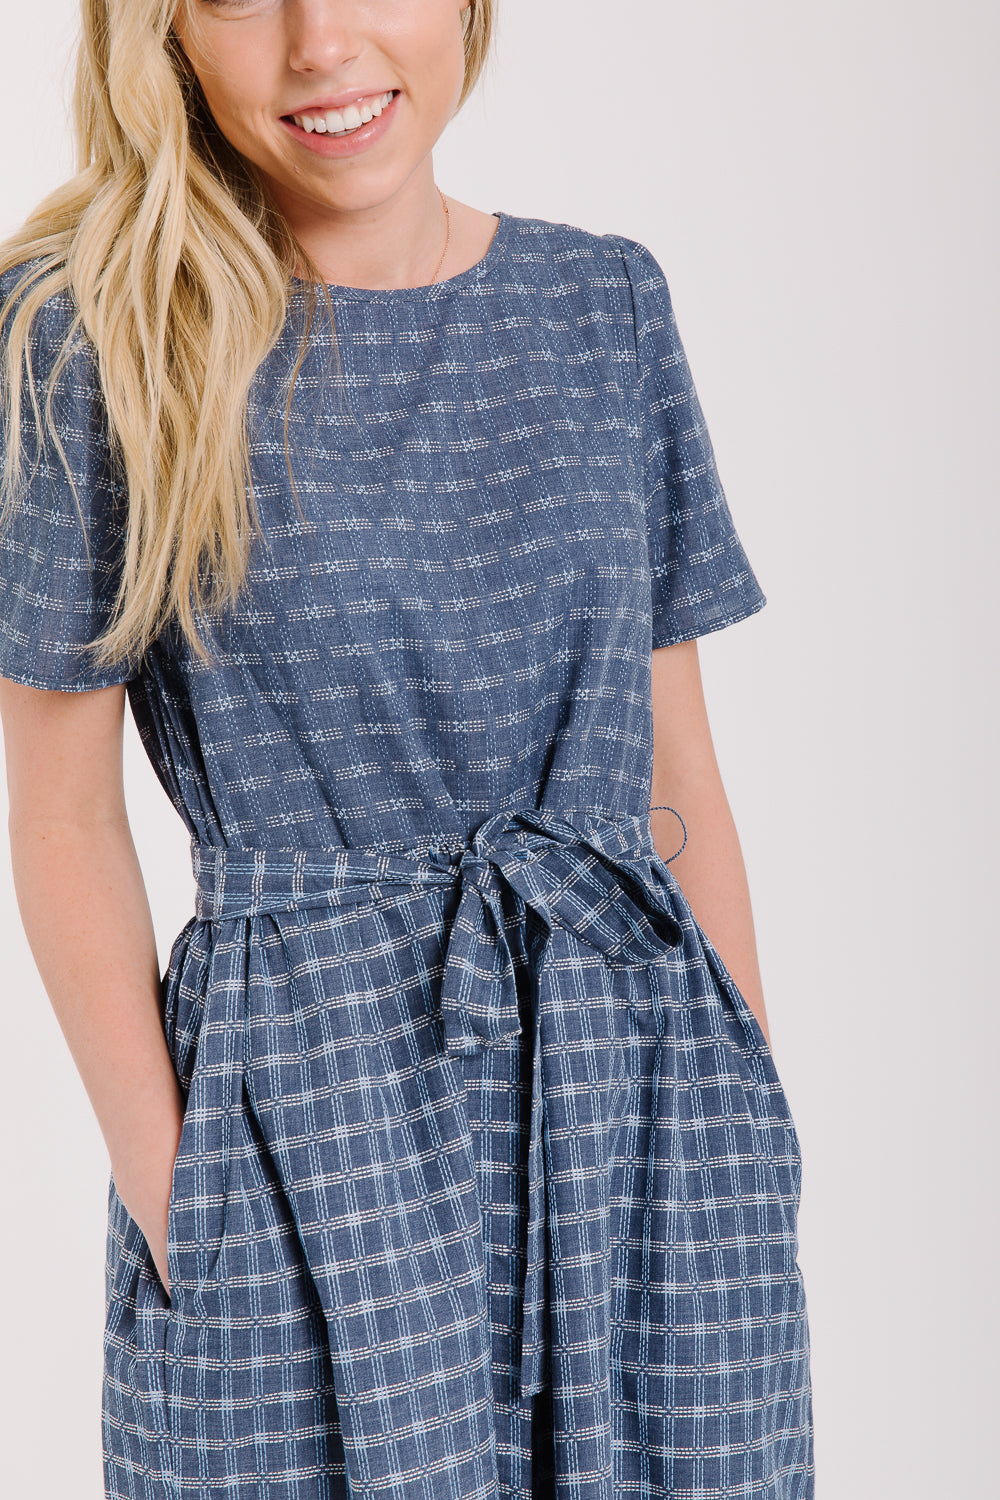 The Brimfield Plaid Tie Dress in Blue